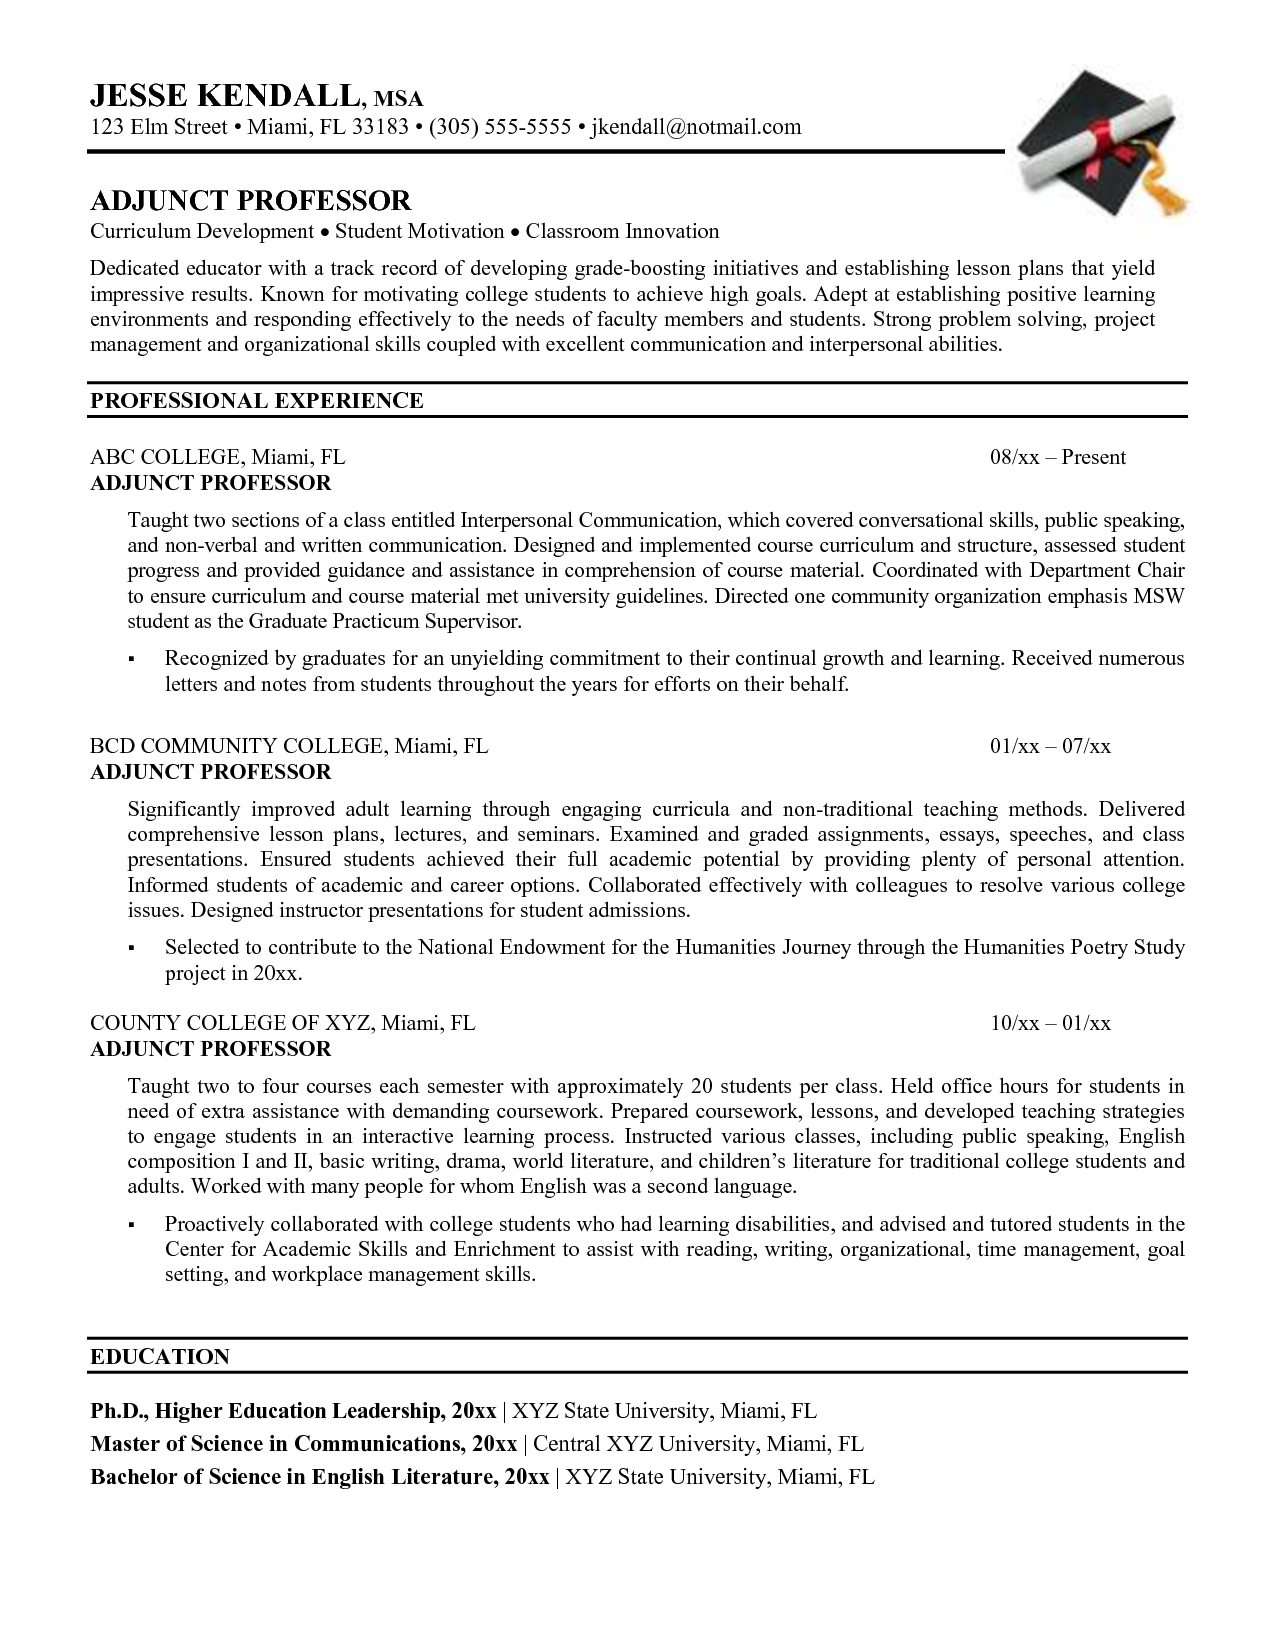 sample resume for experienced assistant professor in engineering college - sample resume for faculty position engineering adjunct